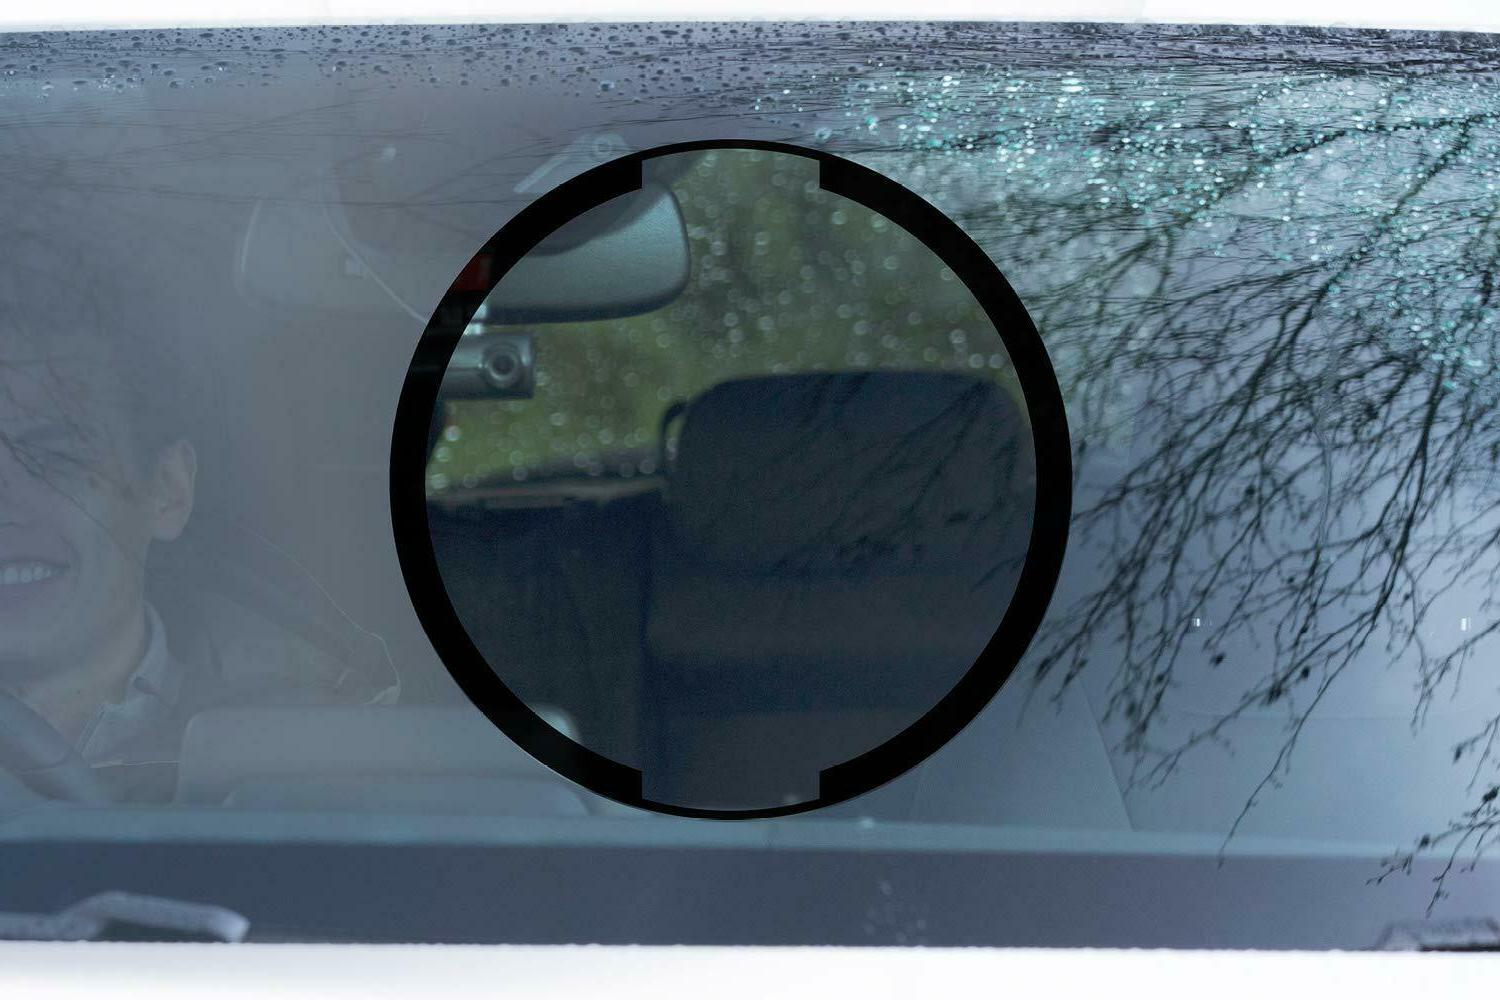 Thinkware filter - Compatible with Dash Cams